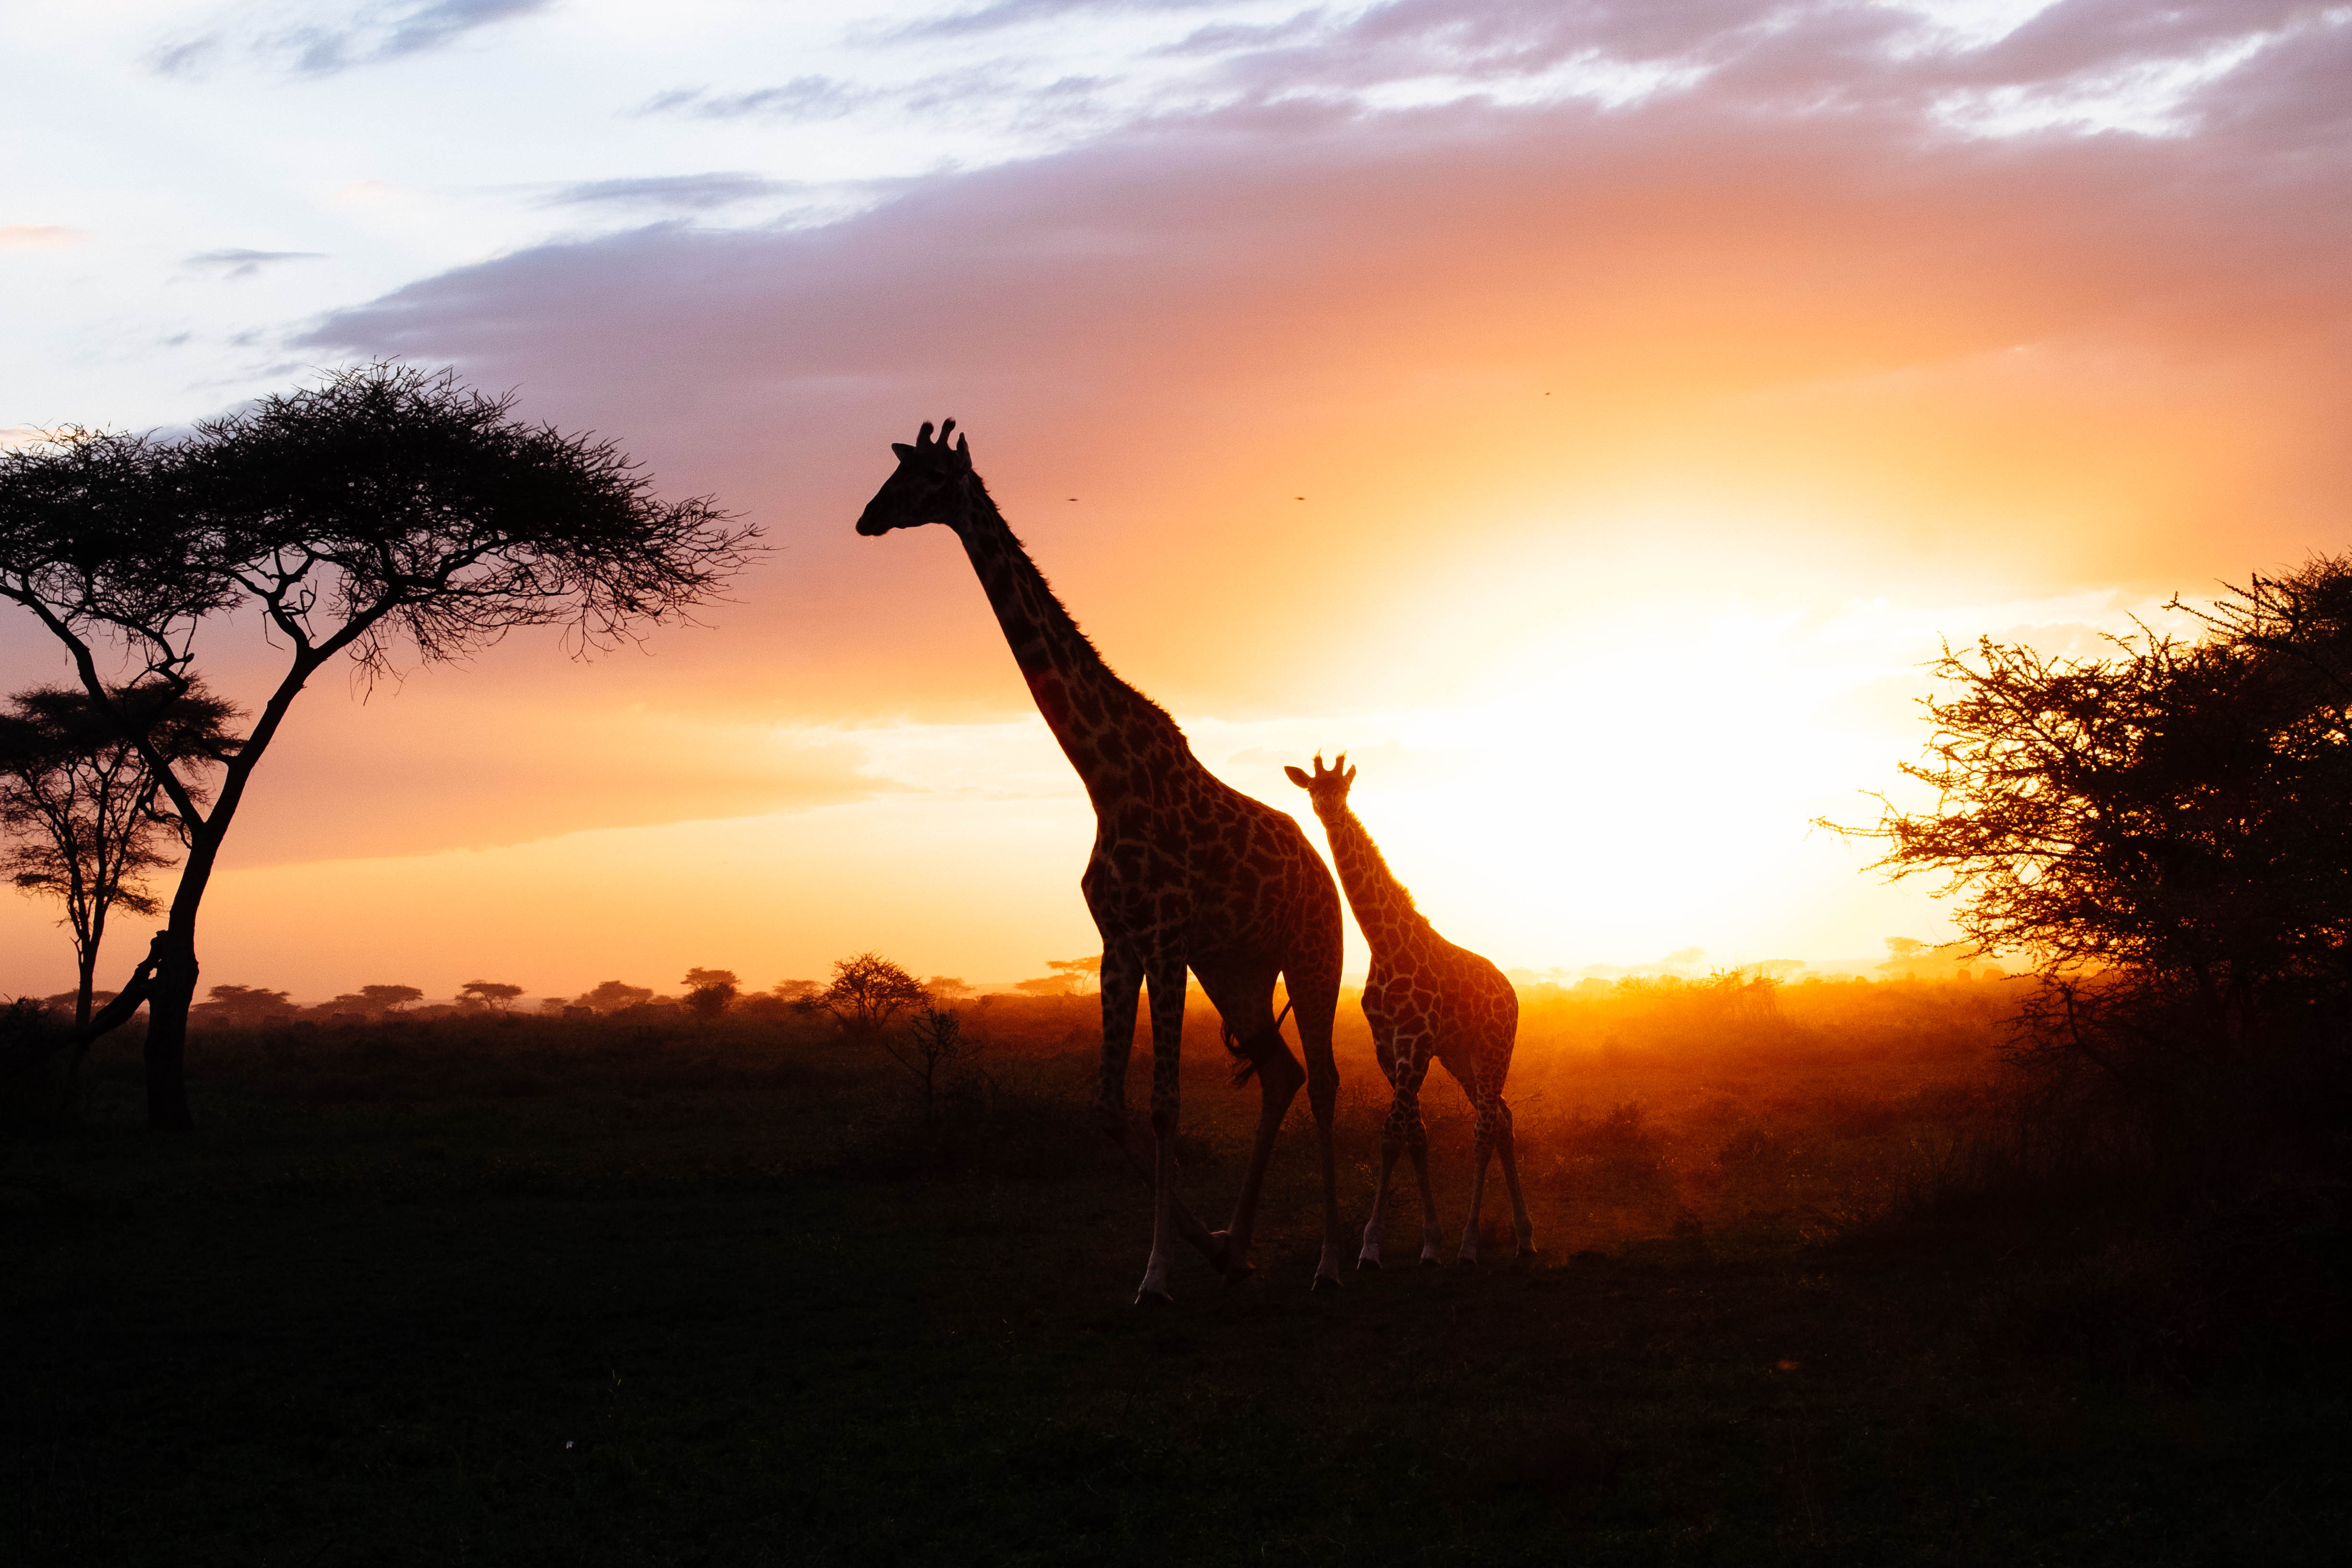 109611 download wallpaper Animals, Silhouettes, Young, Joey, Couple, Pair, Giraffes screensavers and pictures for free